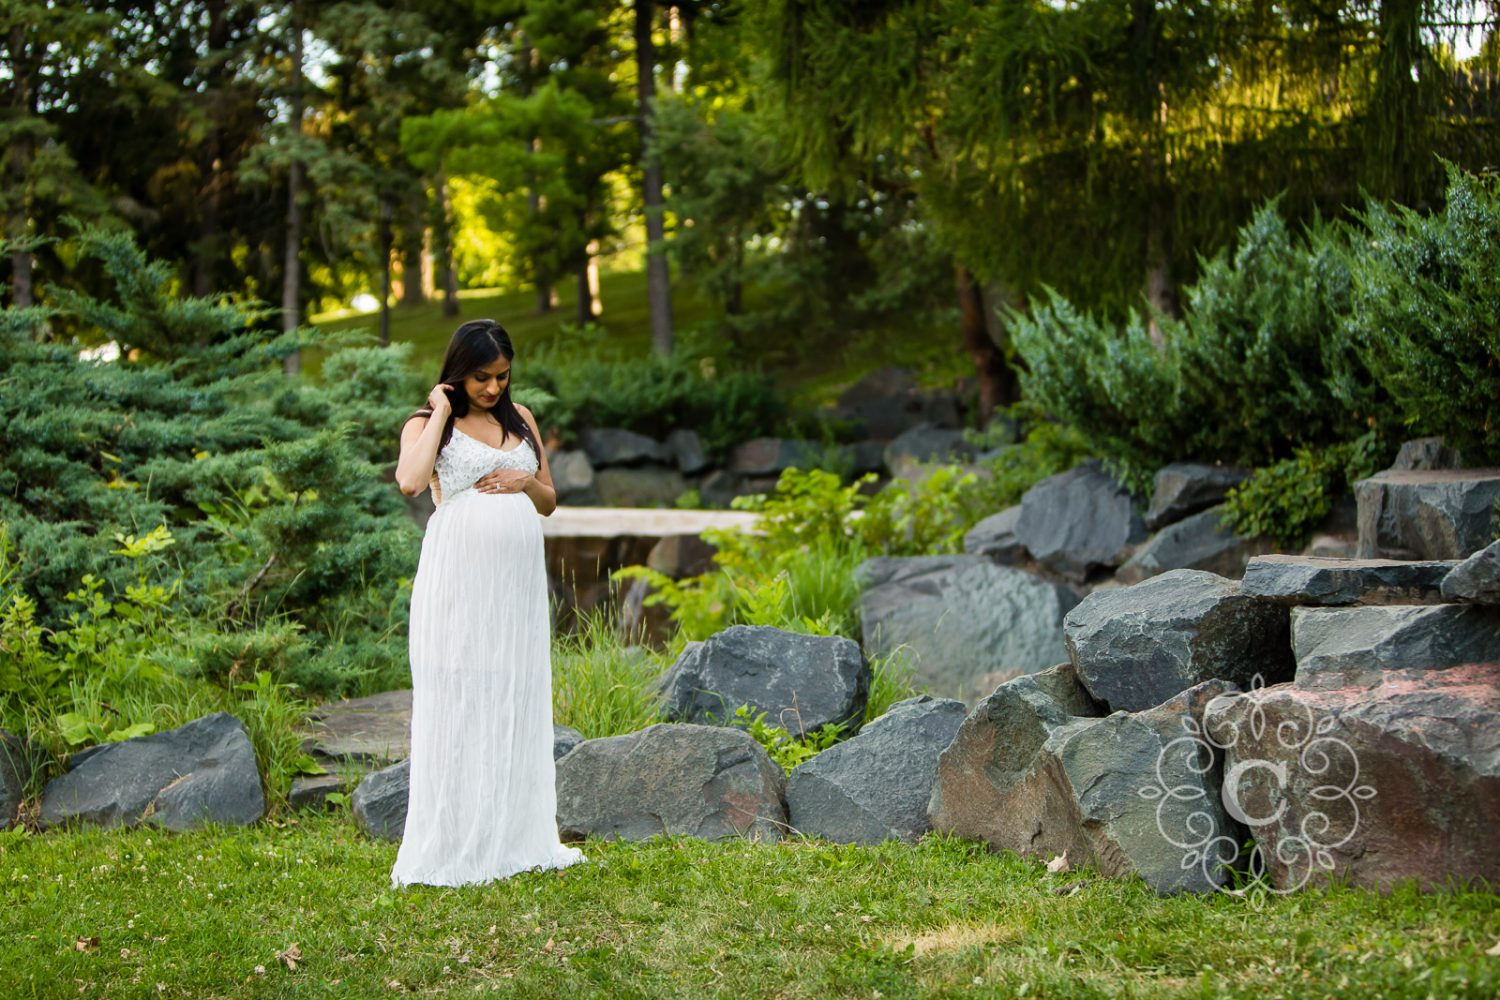 Minneapolis Maternity Photography by Carina Photographics